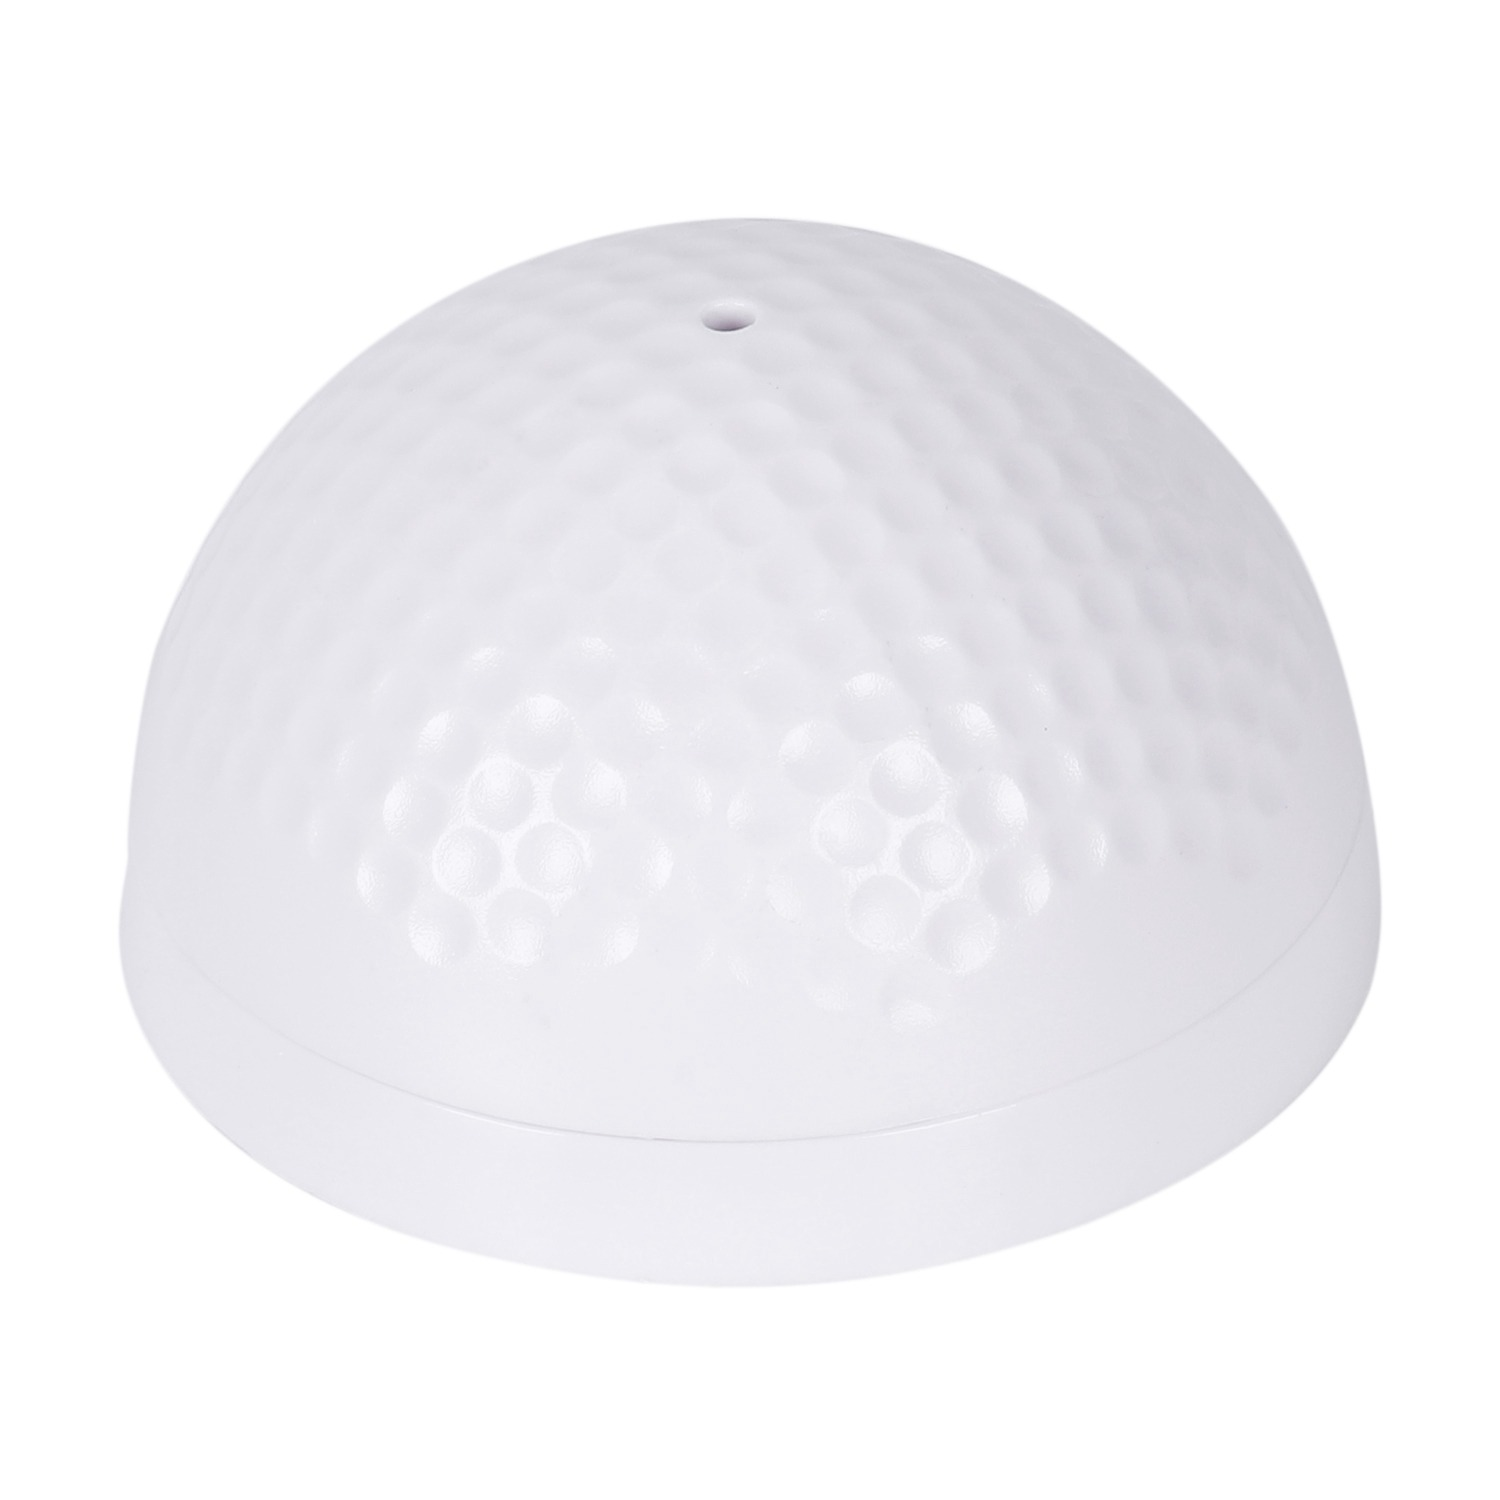 მიკროფონი CS-09A Golf ball sound monitor Audio Pickup Security Listening for CCTV Camera Audio Camera Microphone